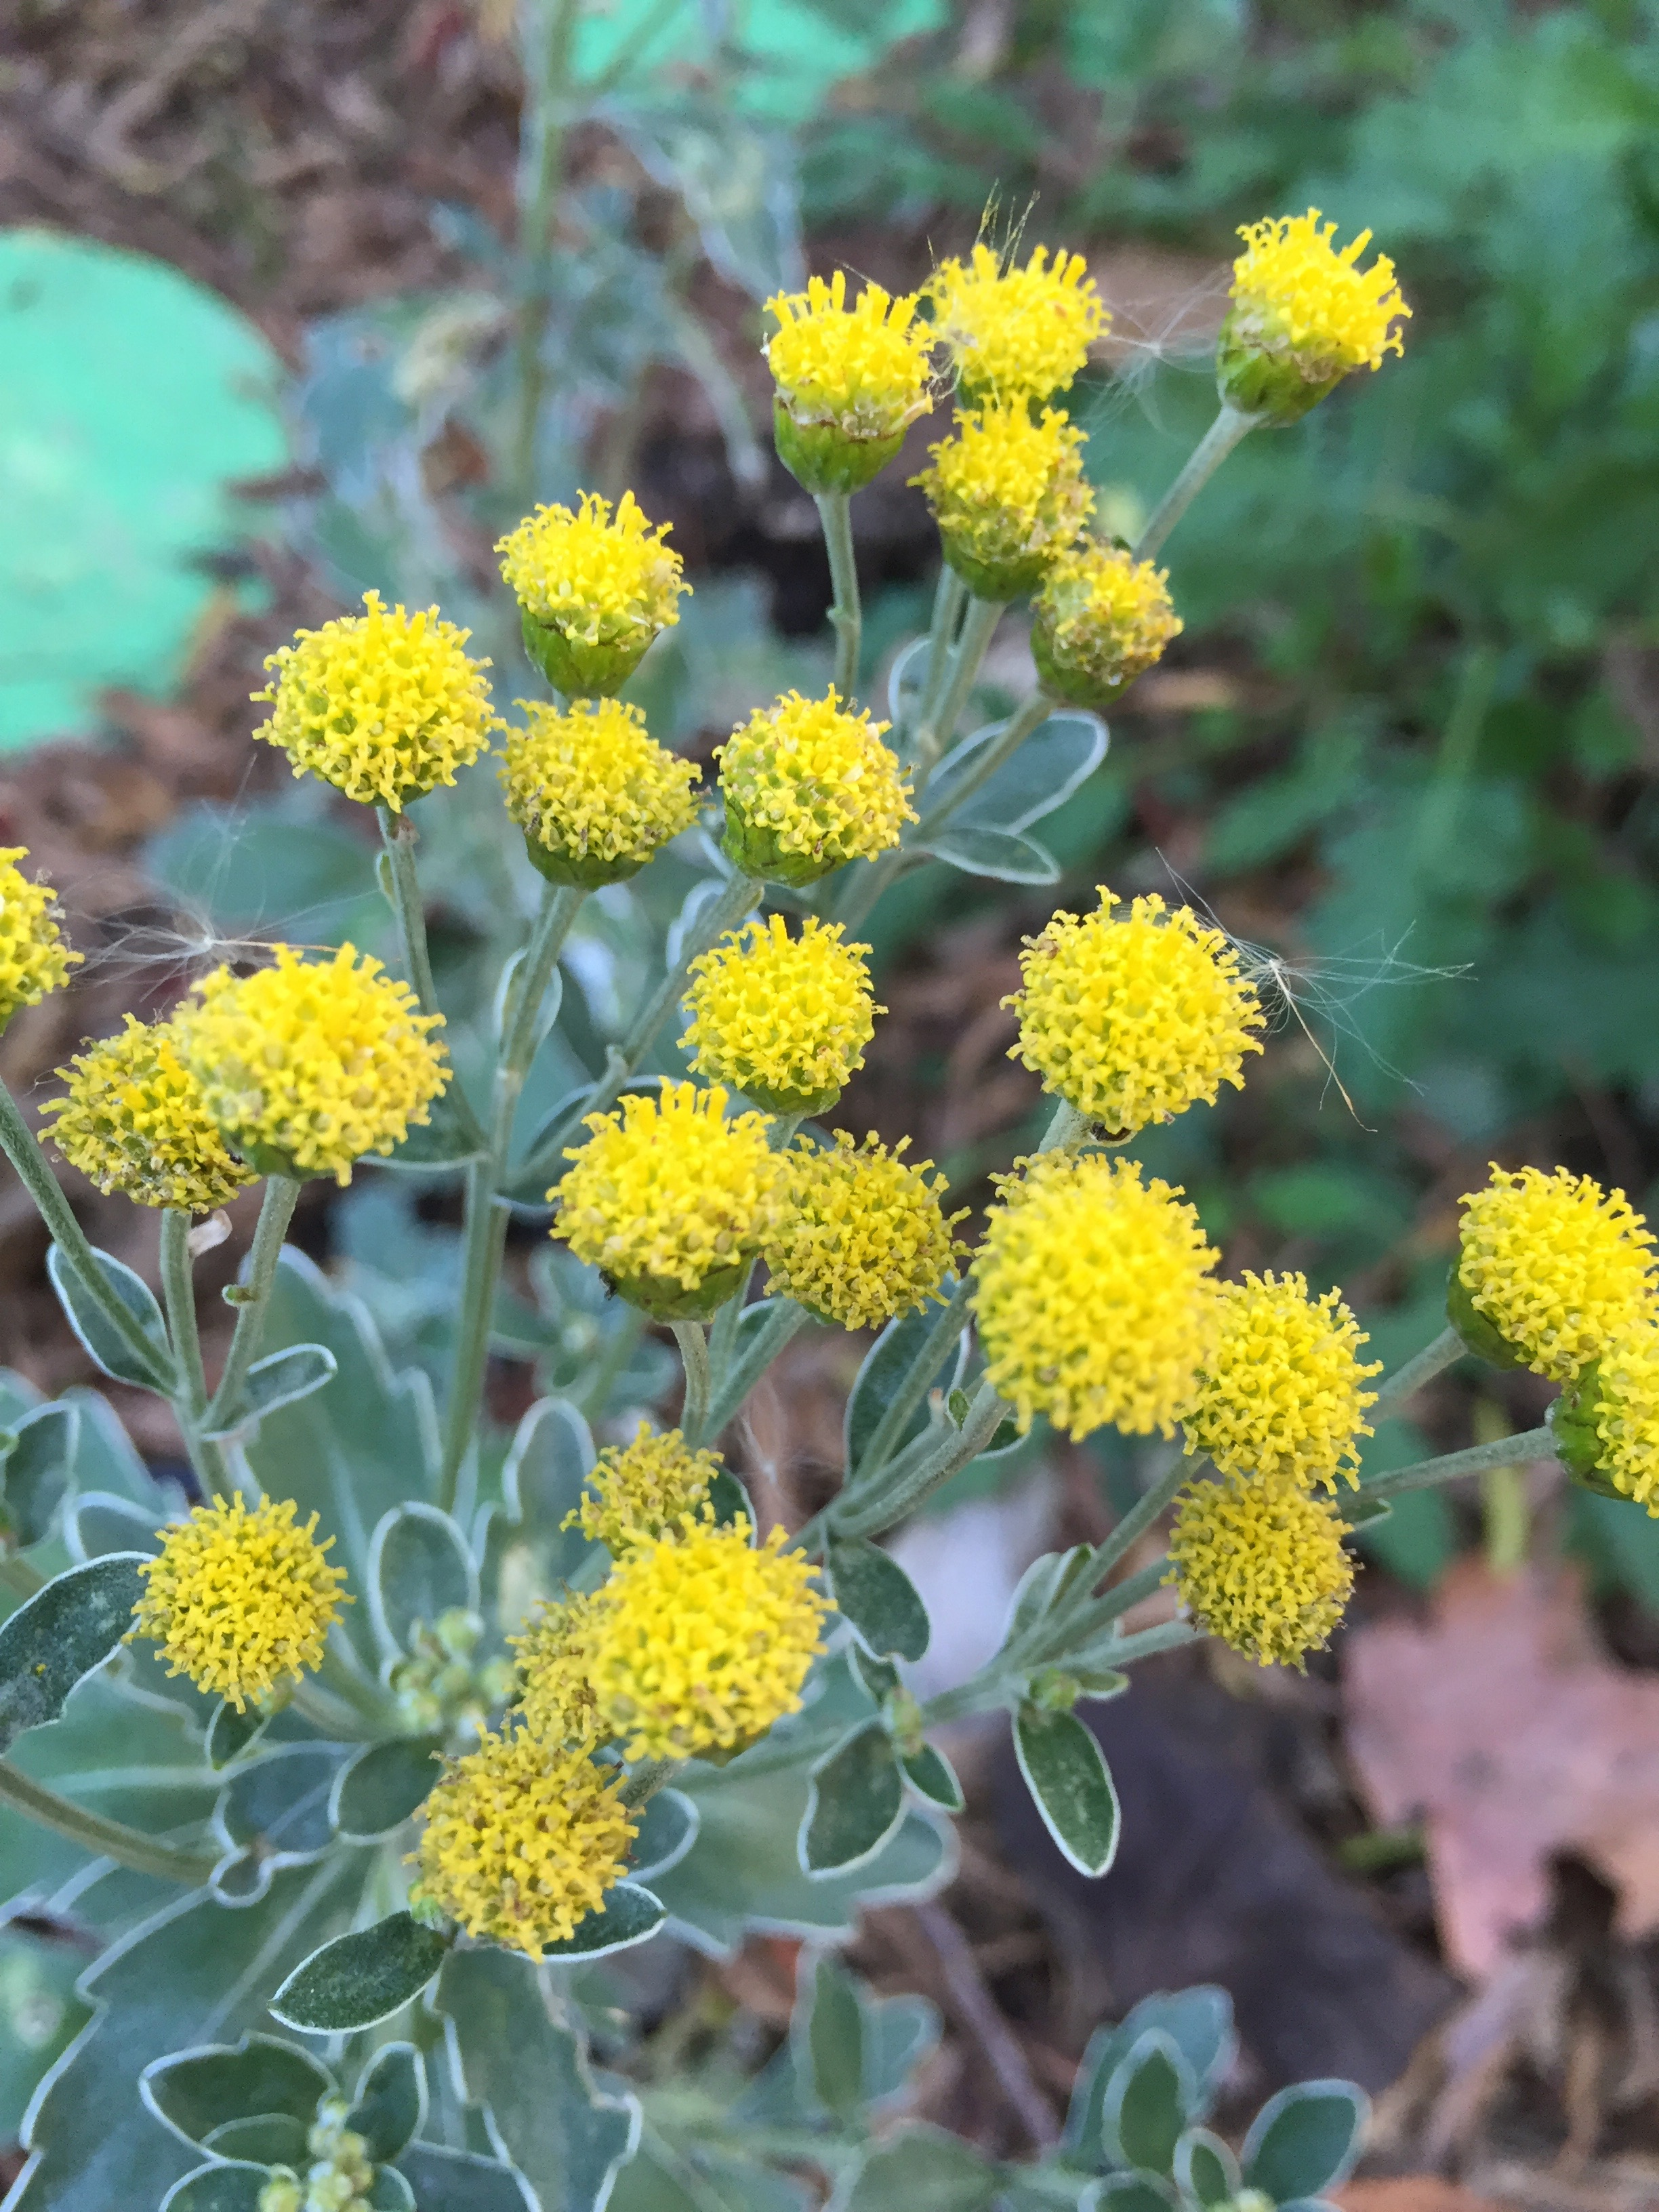 Ajania pacifica , or Pacific Chrysanthemum, a welcome winter bloomer in a protected space